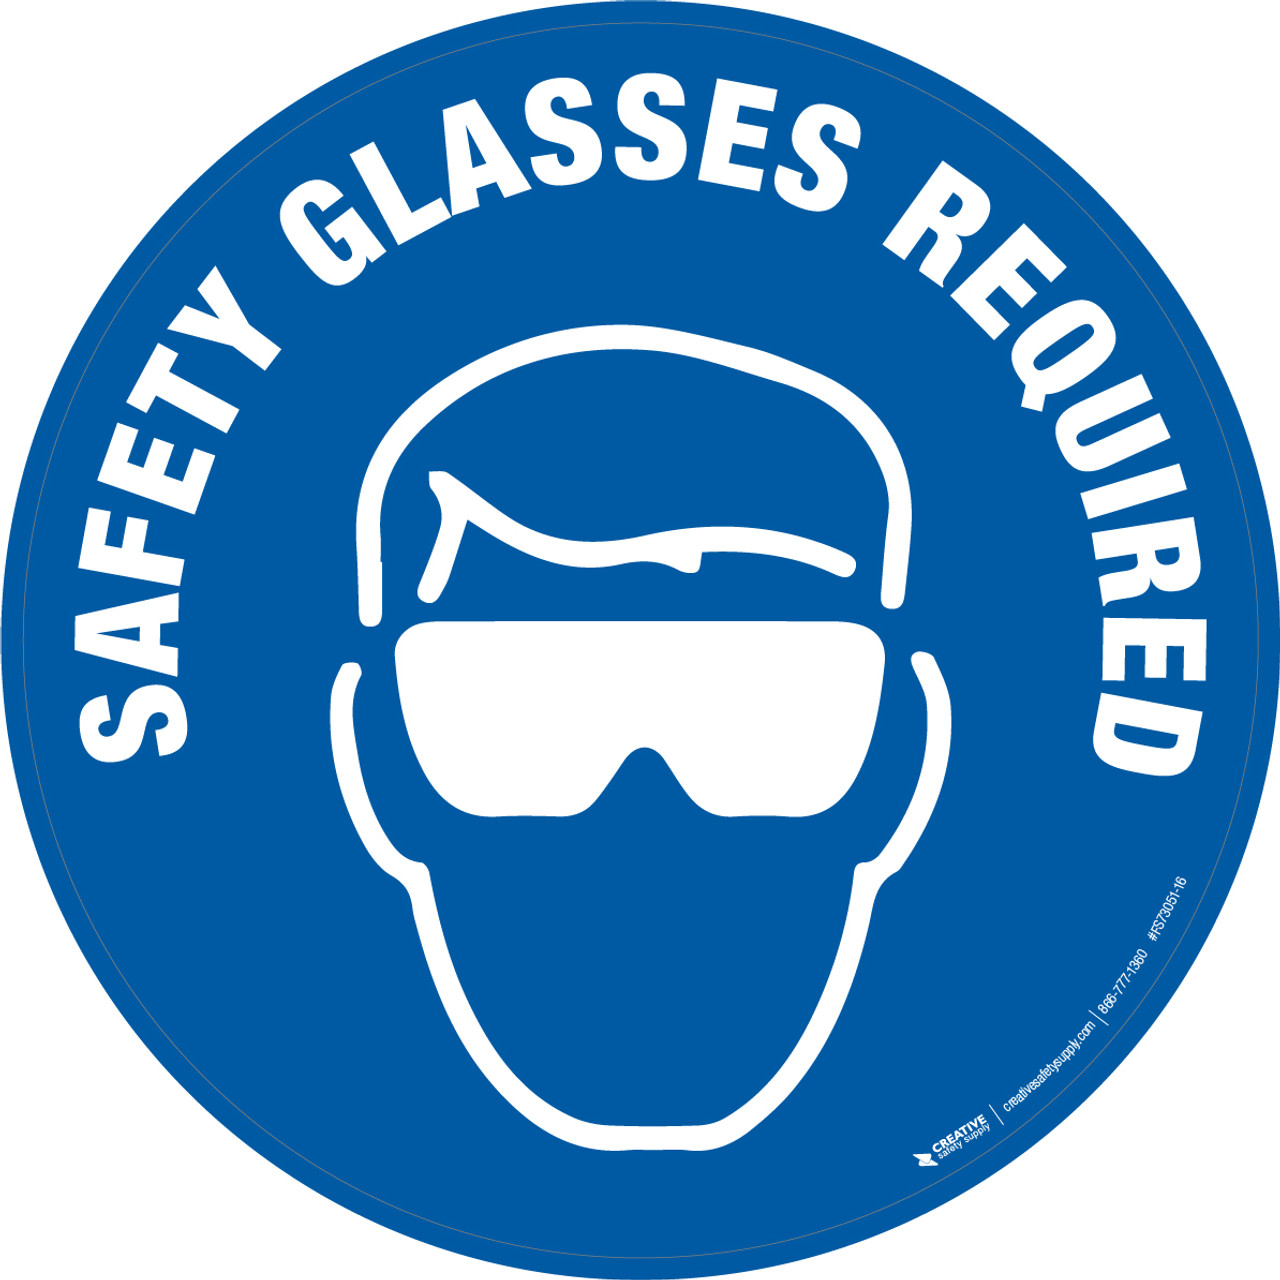 Custom Safety Glasses with team logos Nfl by ... |Safety Glasses Logo